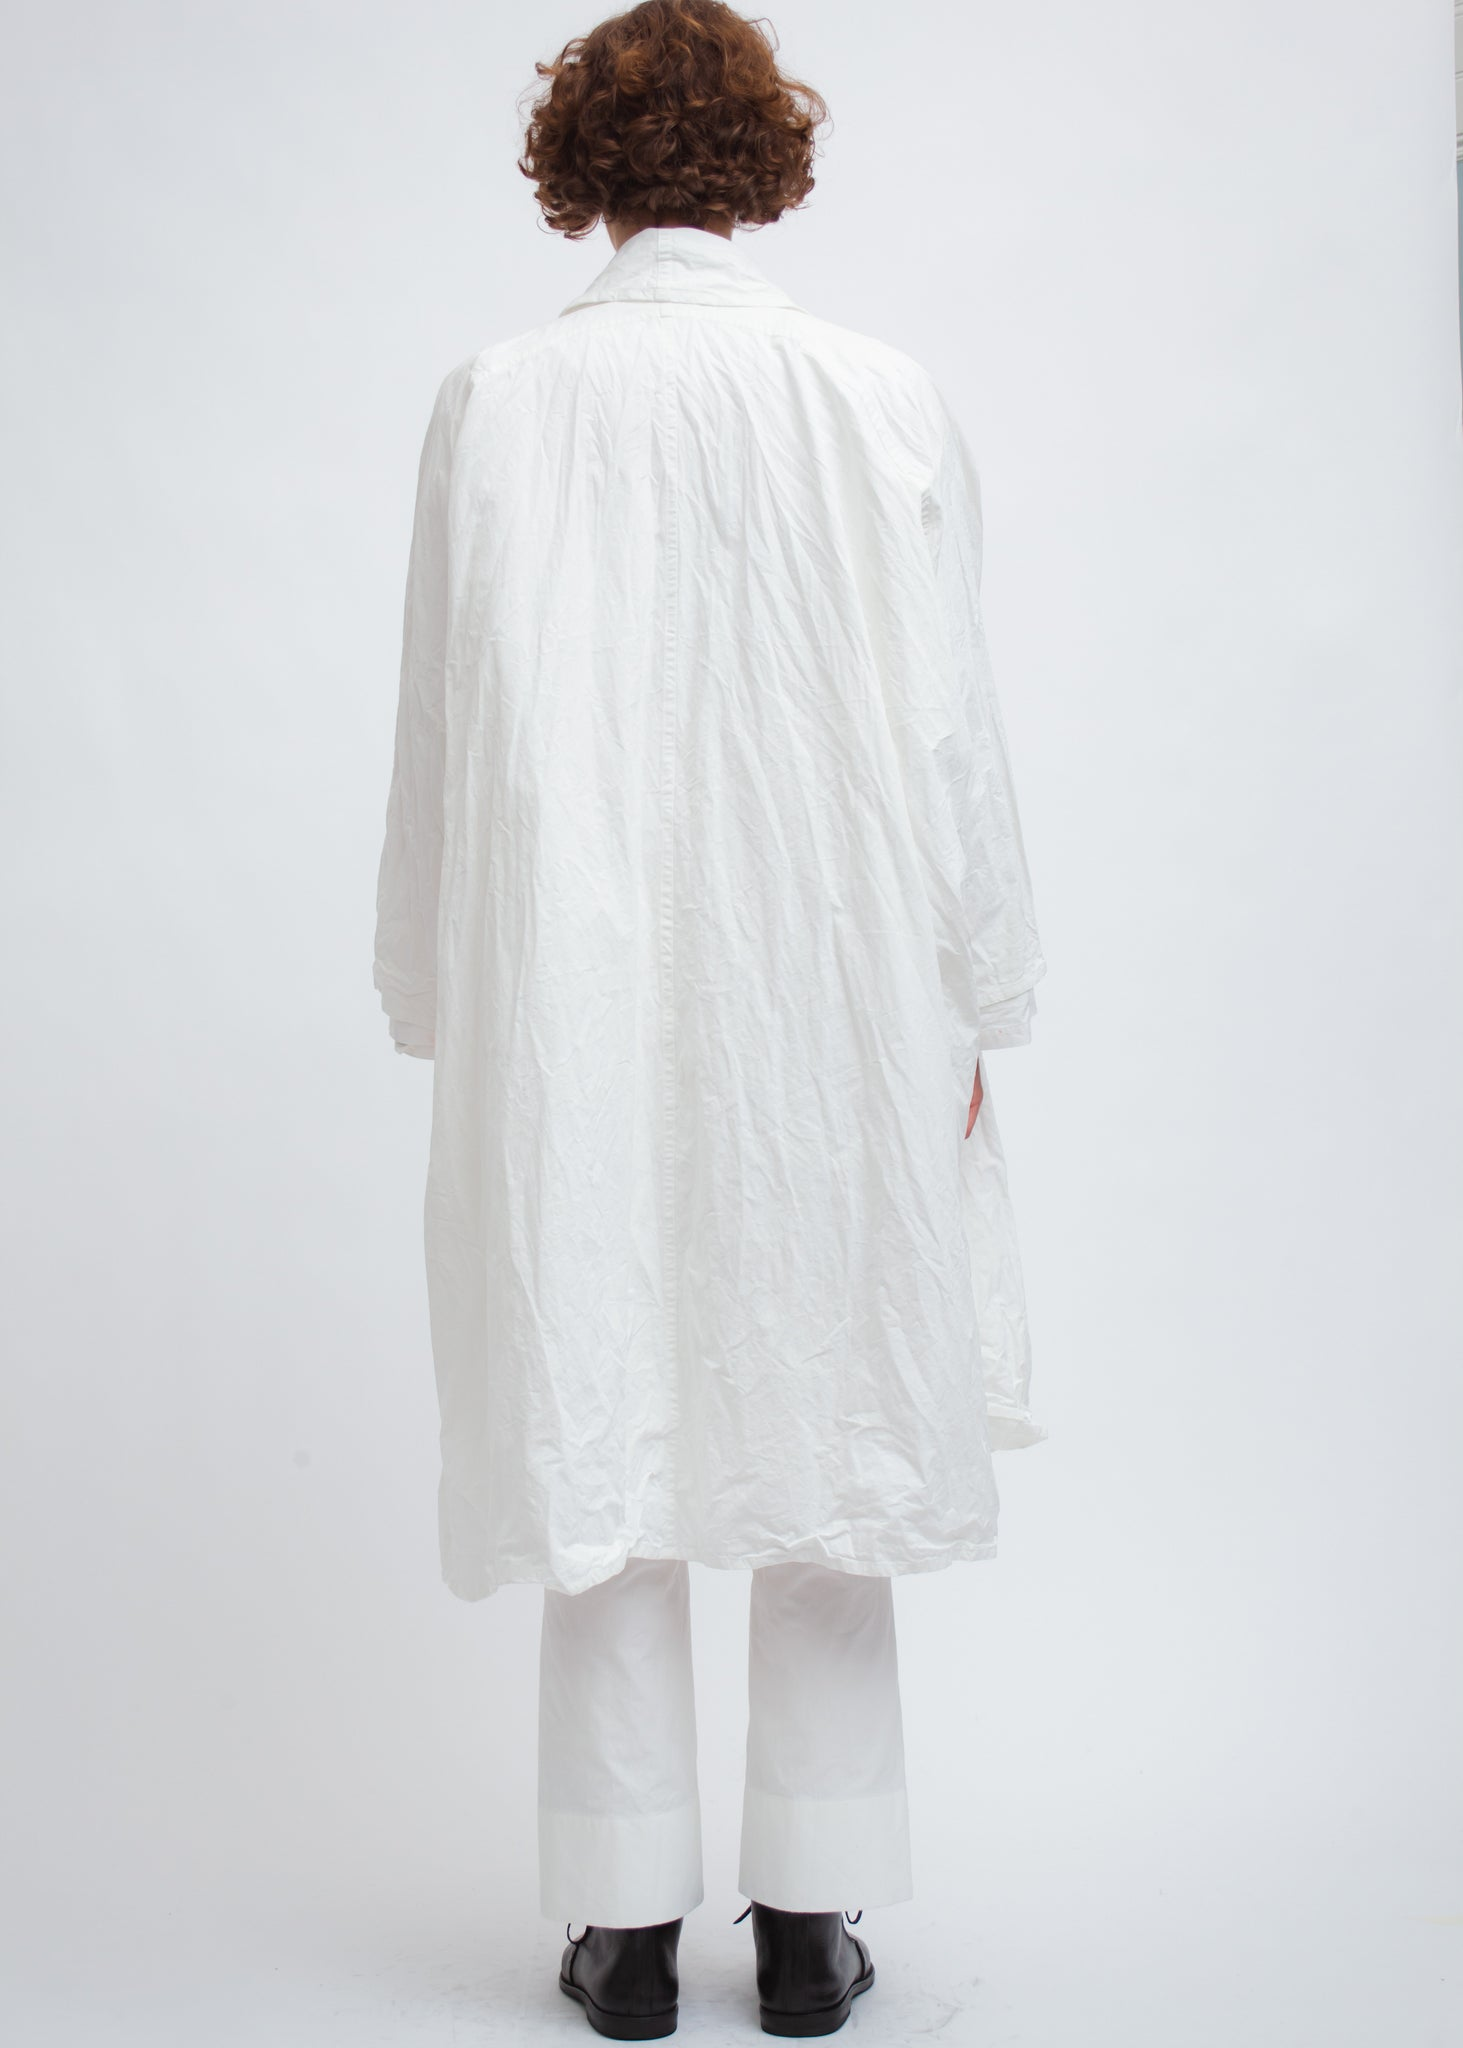 Omar Afridi Draped Layer Coat (White Mid Weight Cotton)